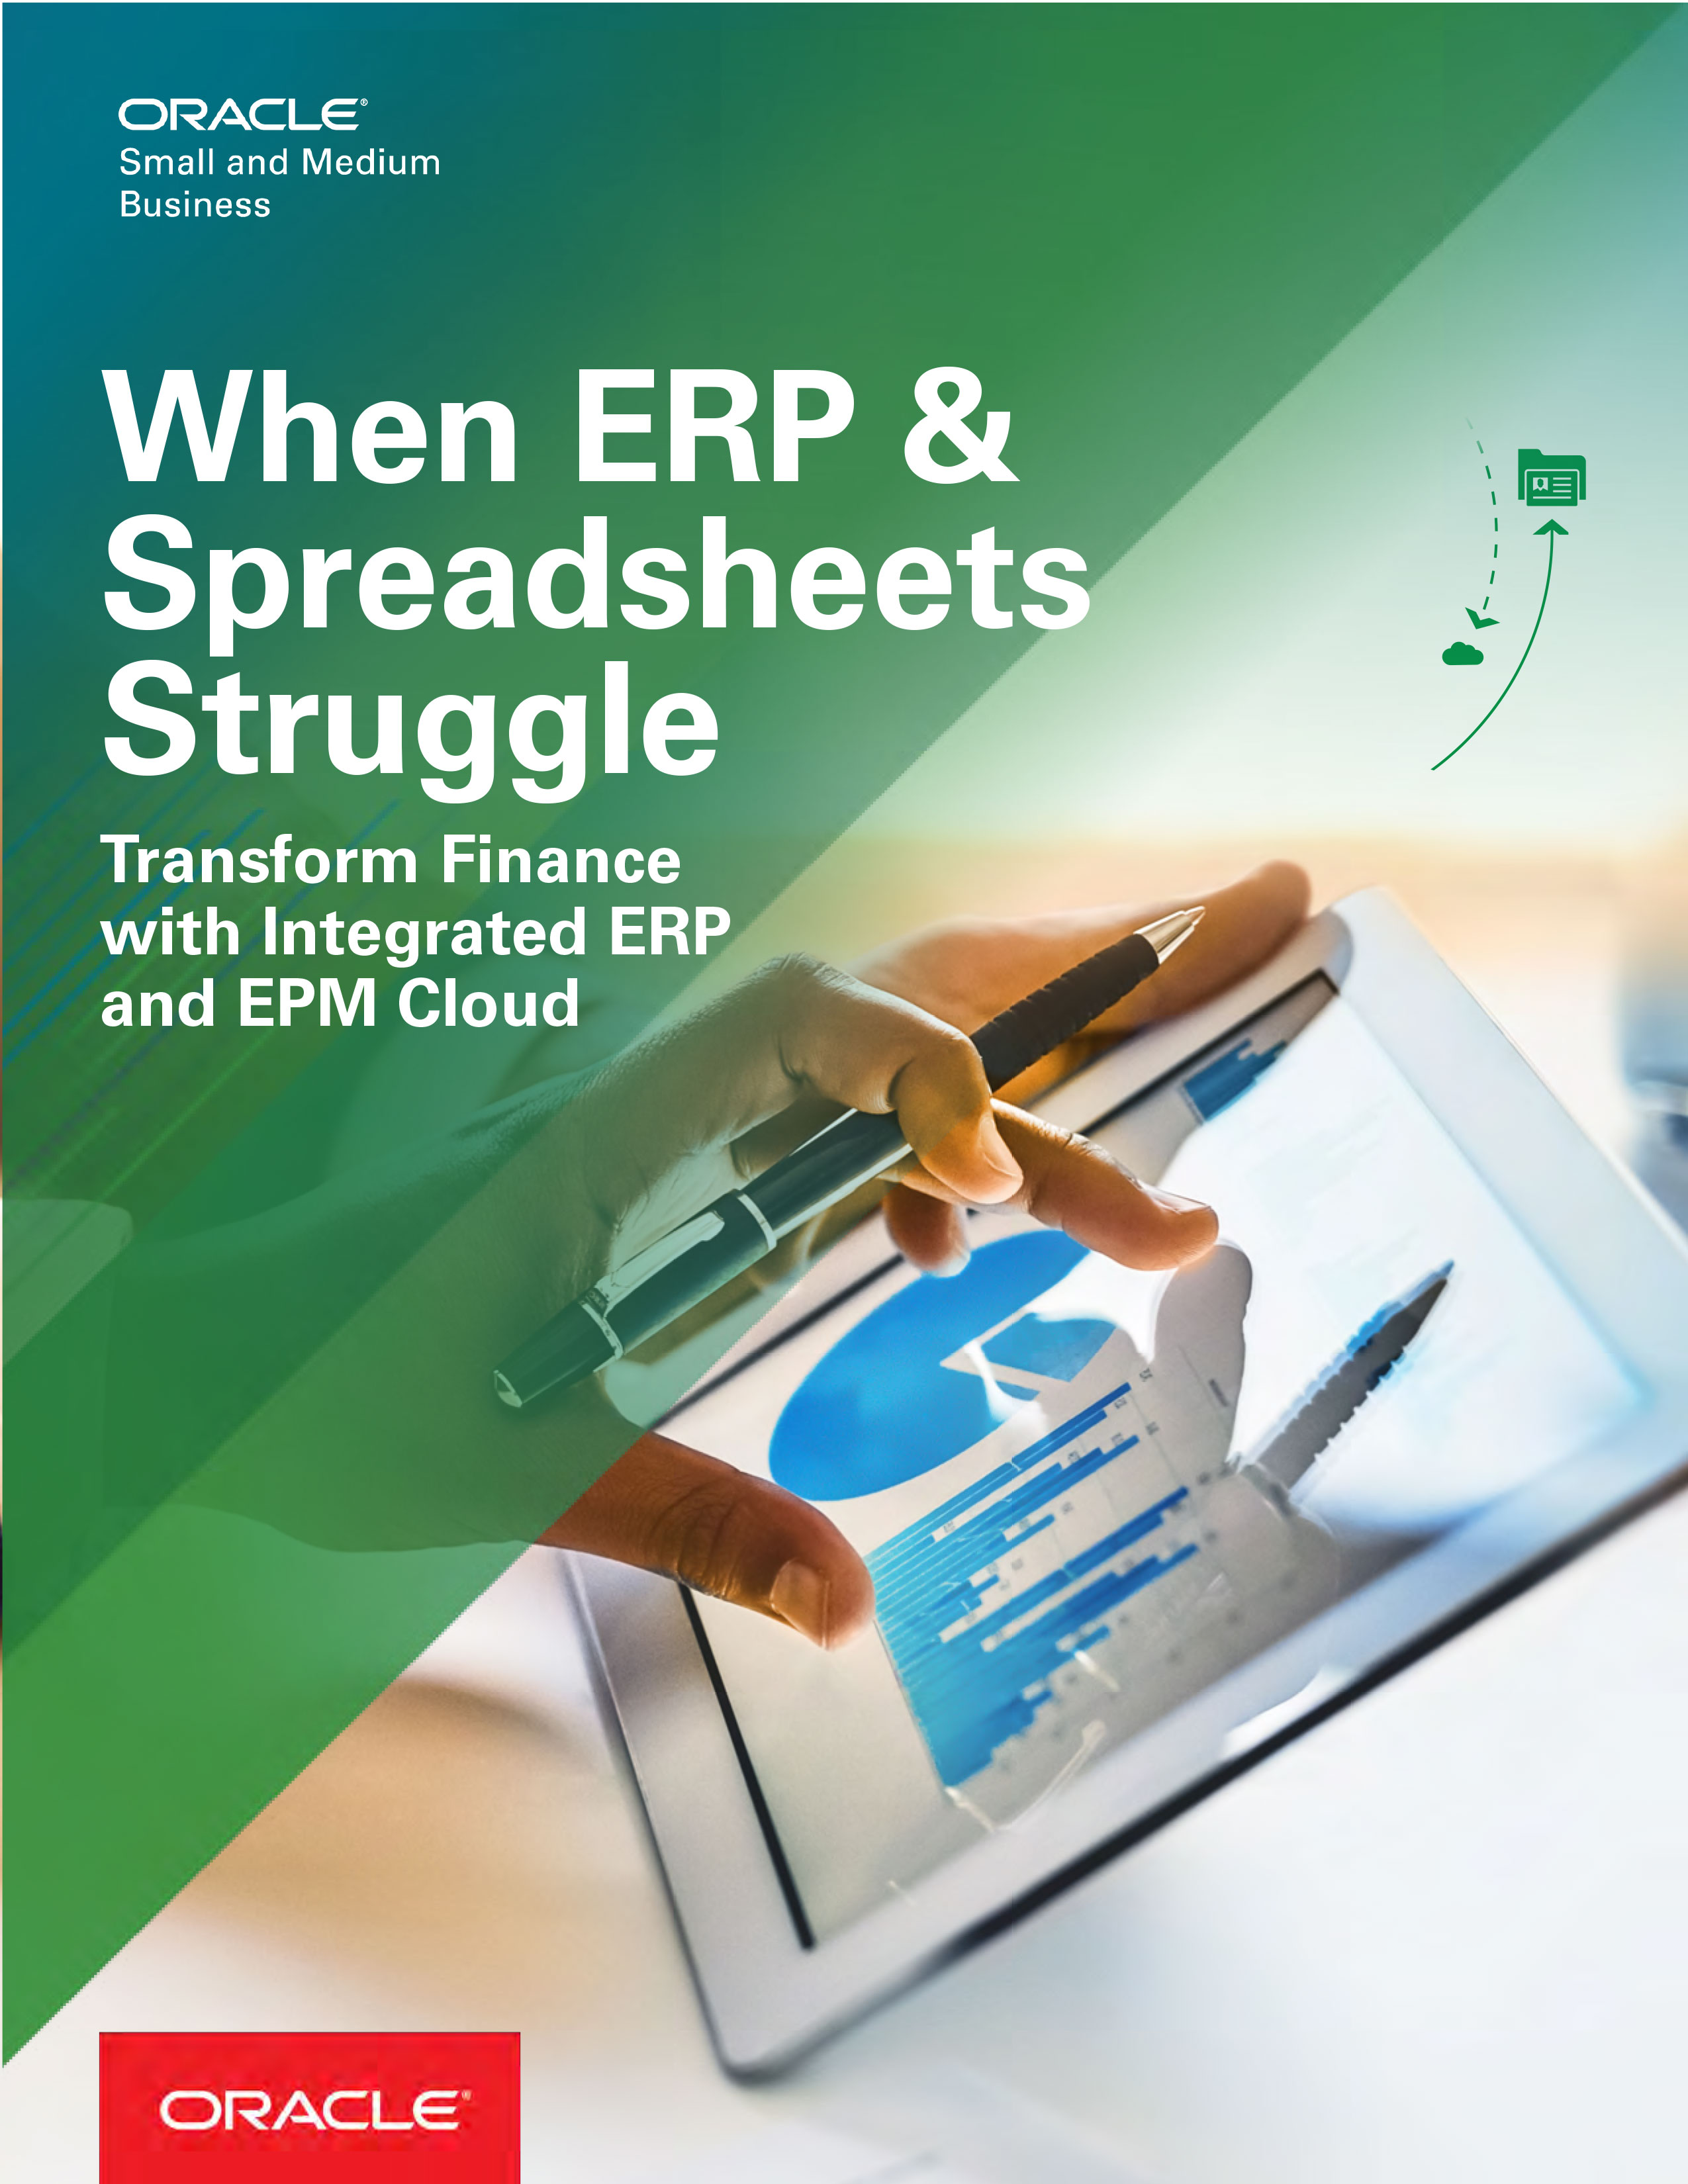 Move Away from Spreadsheets and Trust Your Data Again